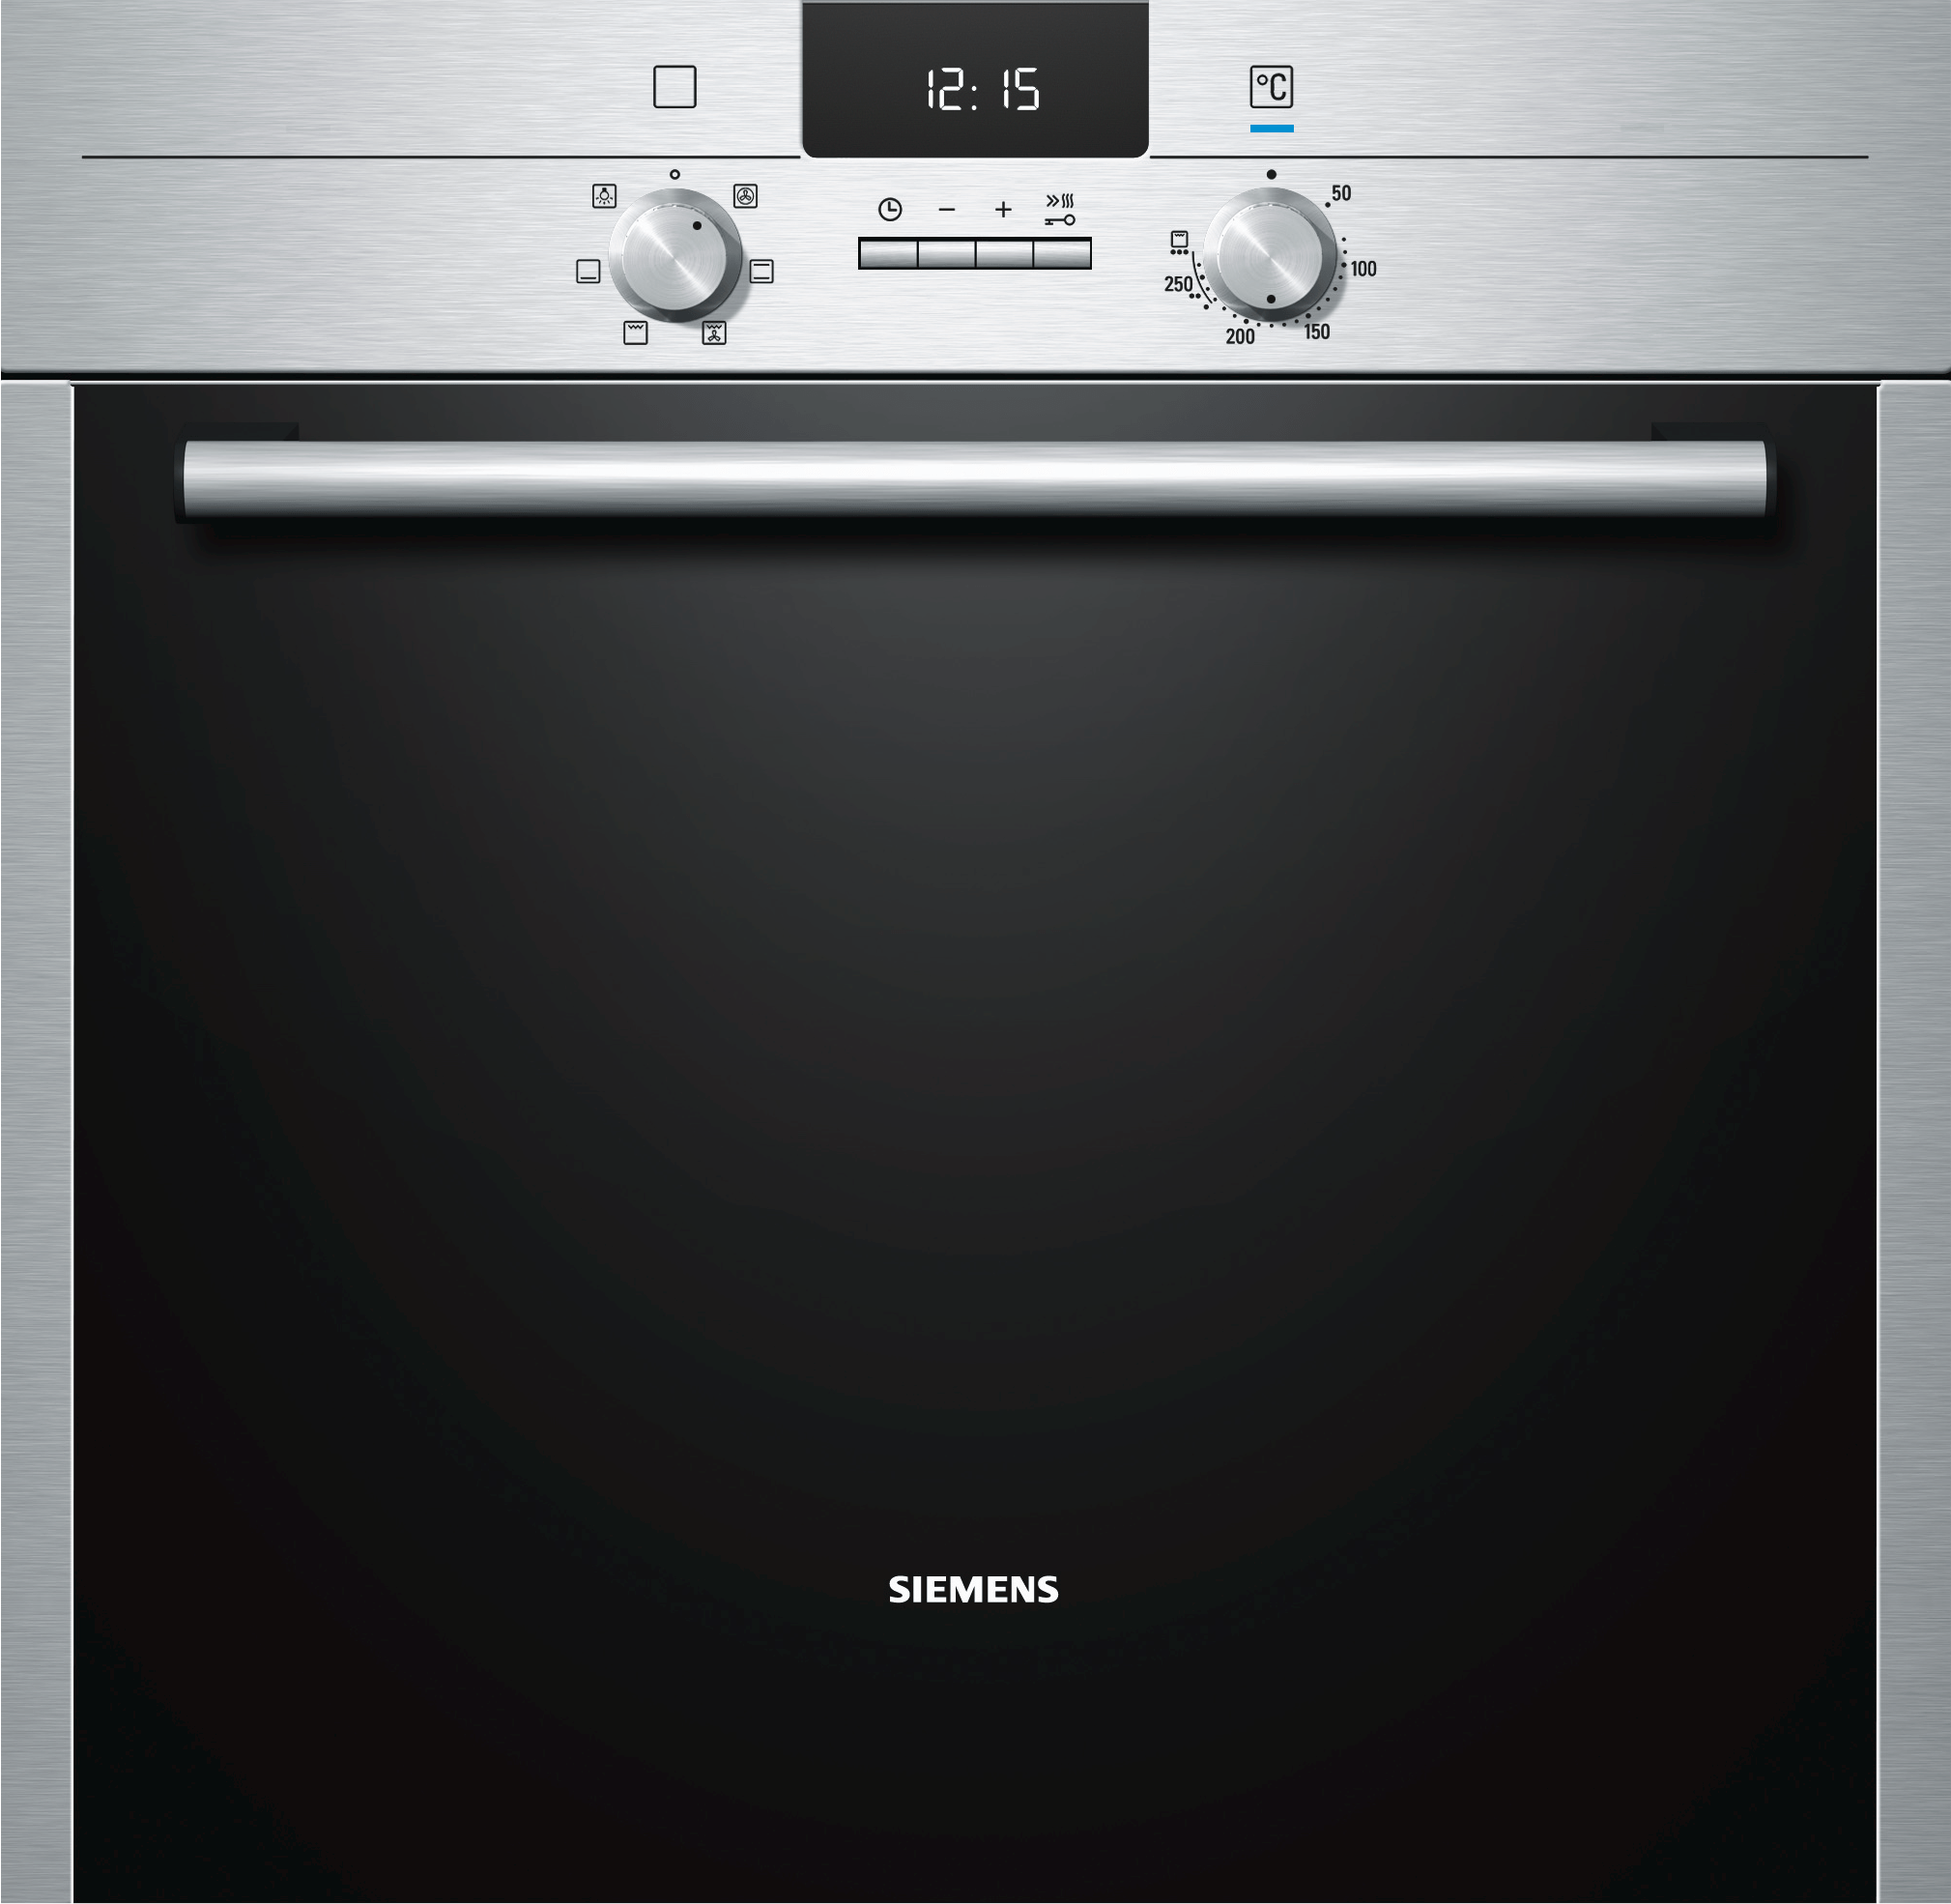 Uncategorized Siemens Kitchen Appliances Prices siemens hb23ab523 built in oven prices and ratings s 67 l ltr hb23ab523